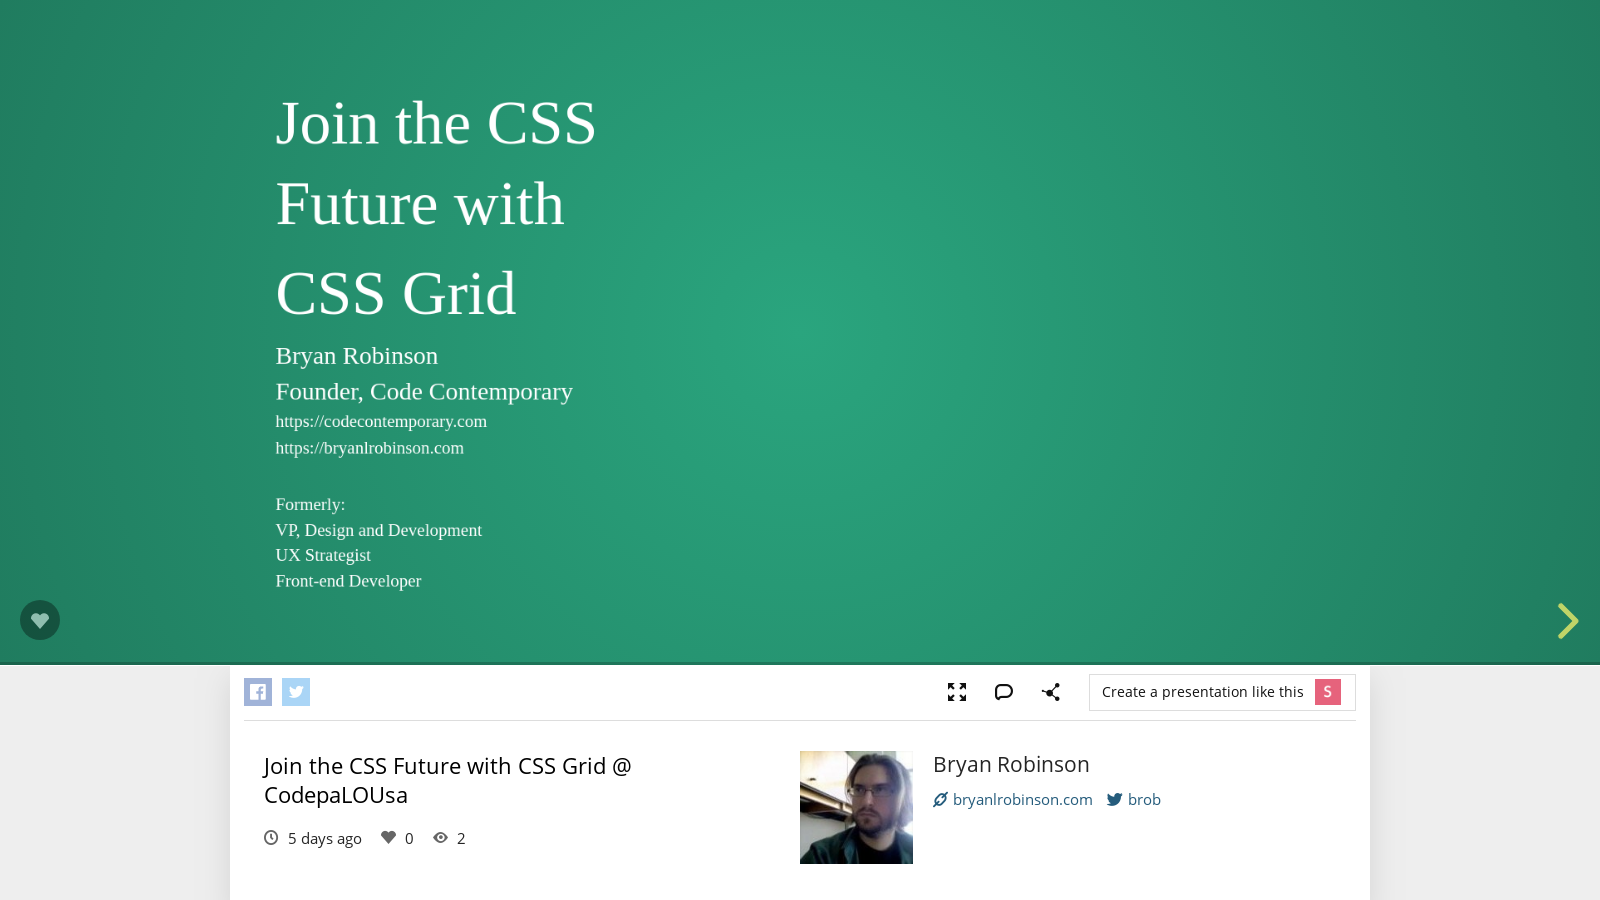 Join the CSS Future with CSS Grid